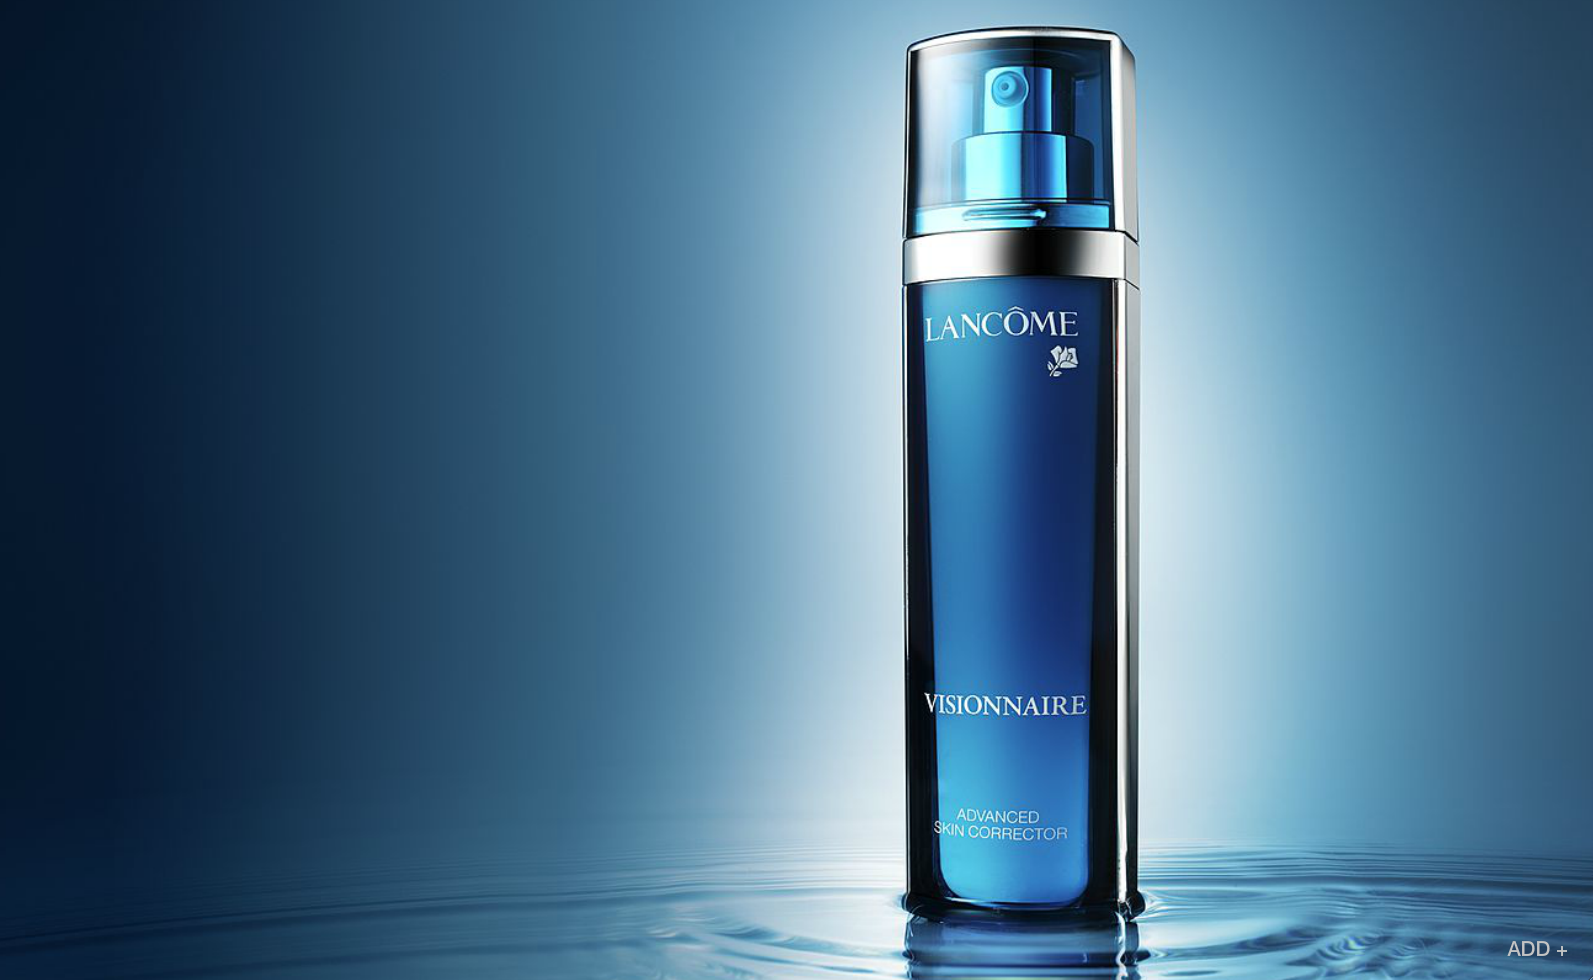 Lancome Visionaire advanced skin corrector - winner of Marie Claire's prix d'excellence de la beaute 2012 - supposed to work!